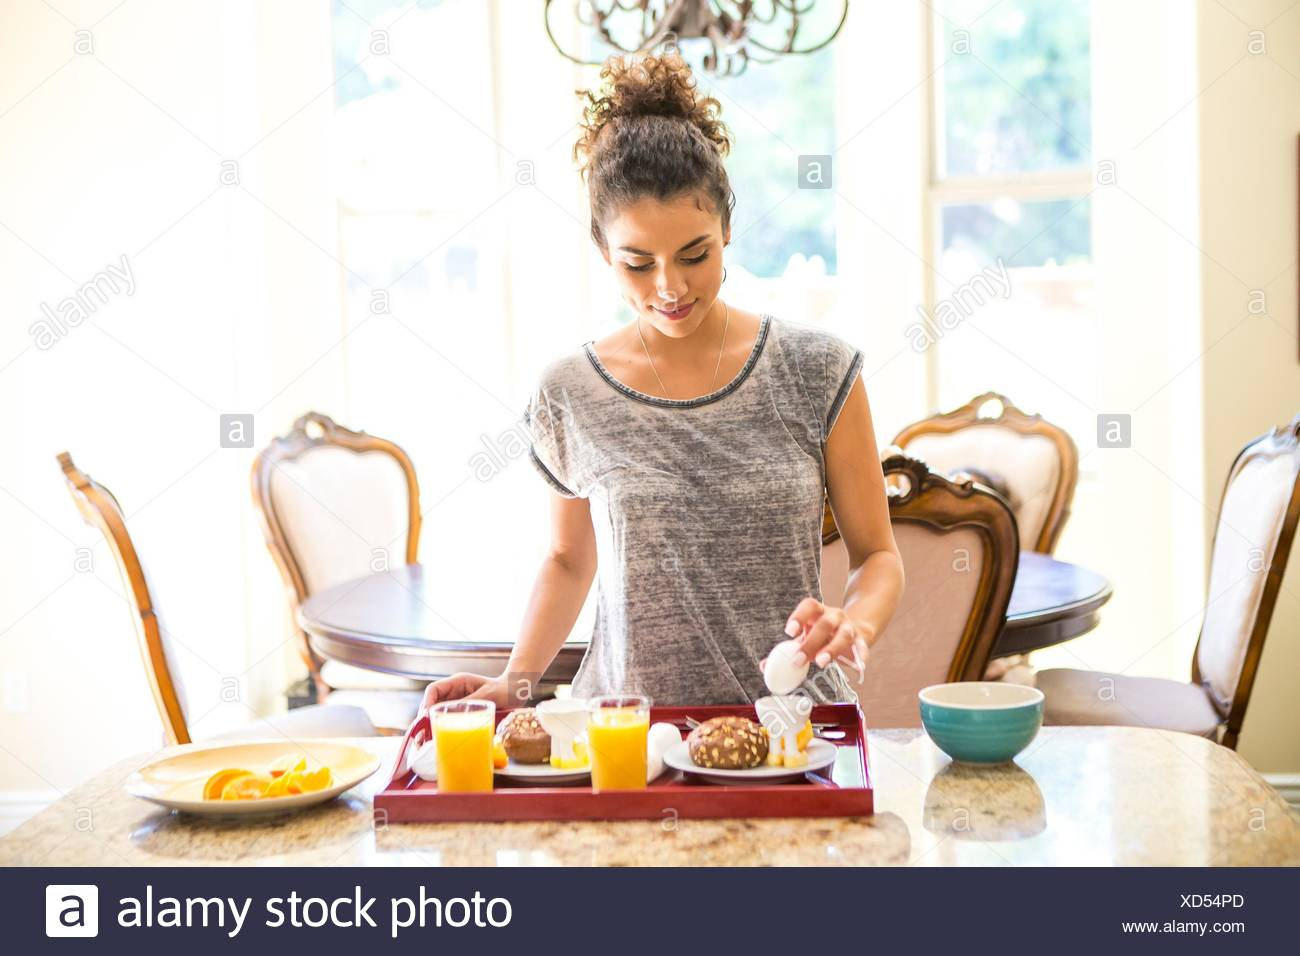 Young woman at home preparing breakfast tray, looking down holding egg - Stock Image